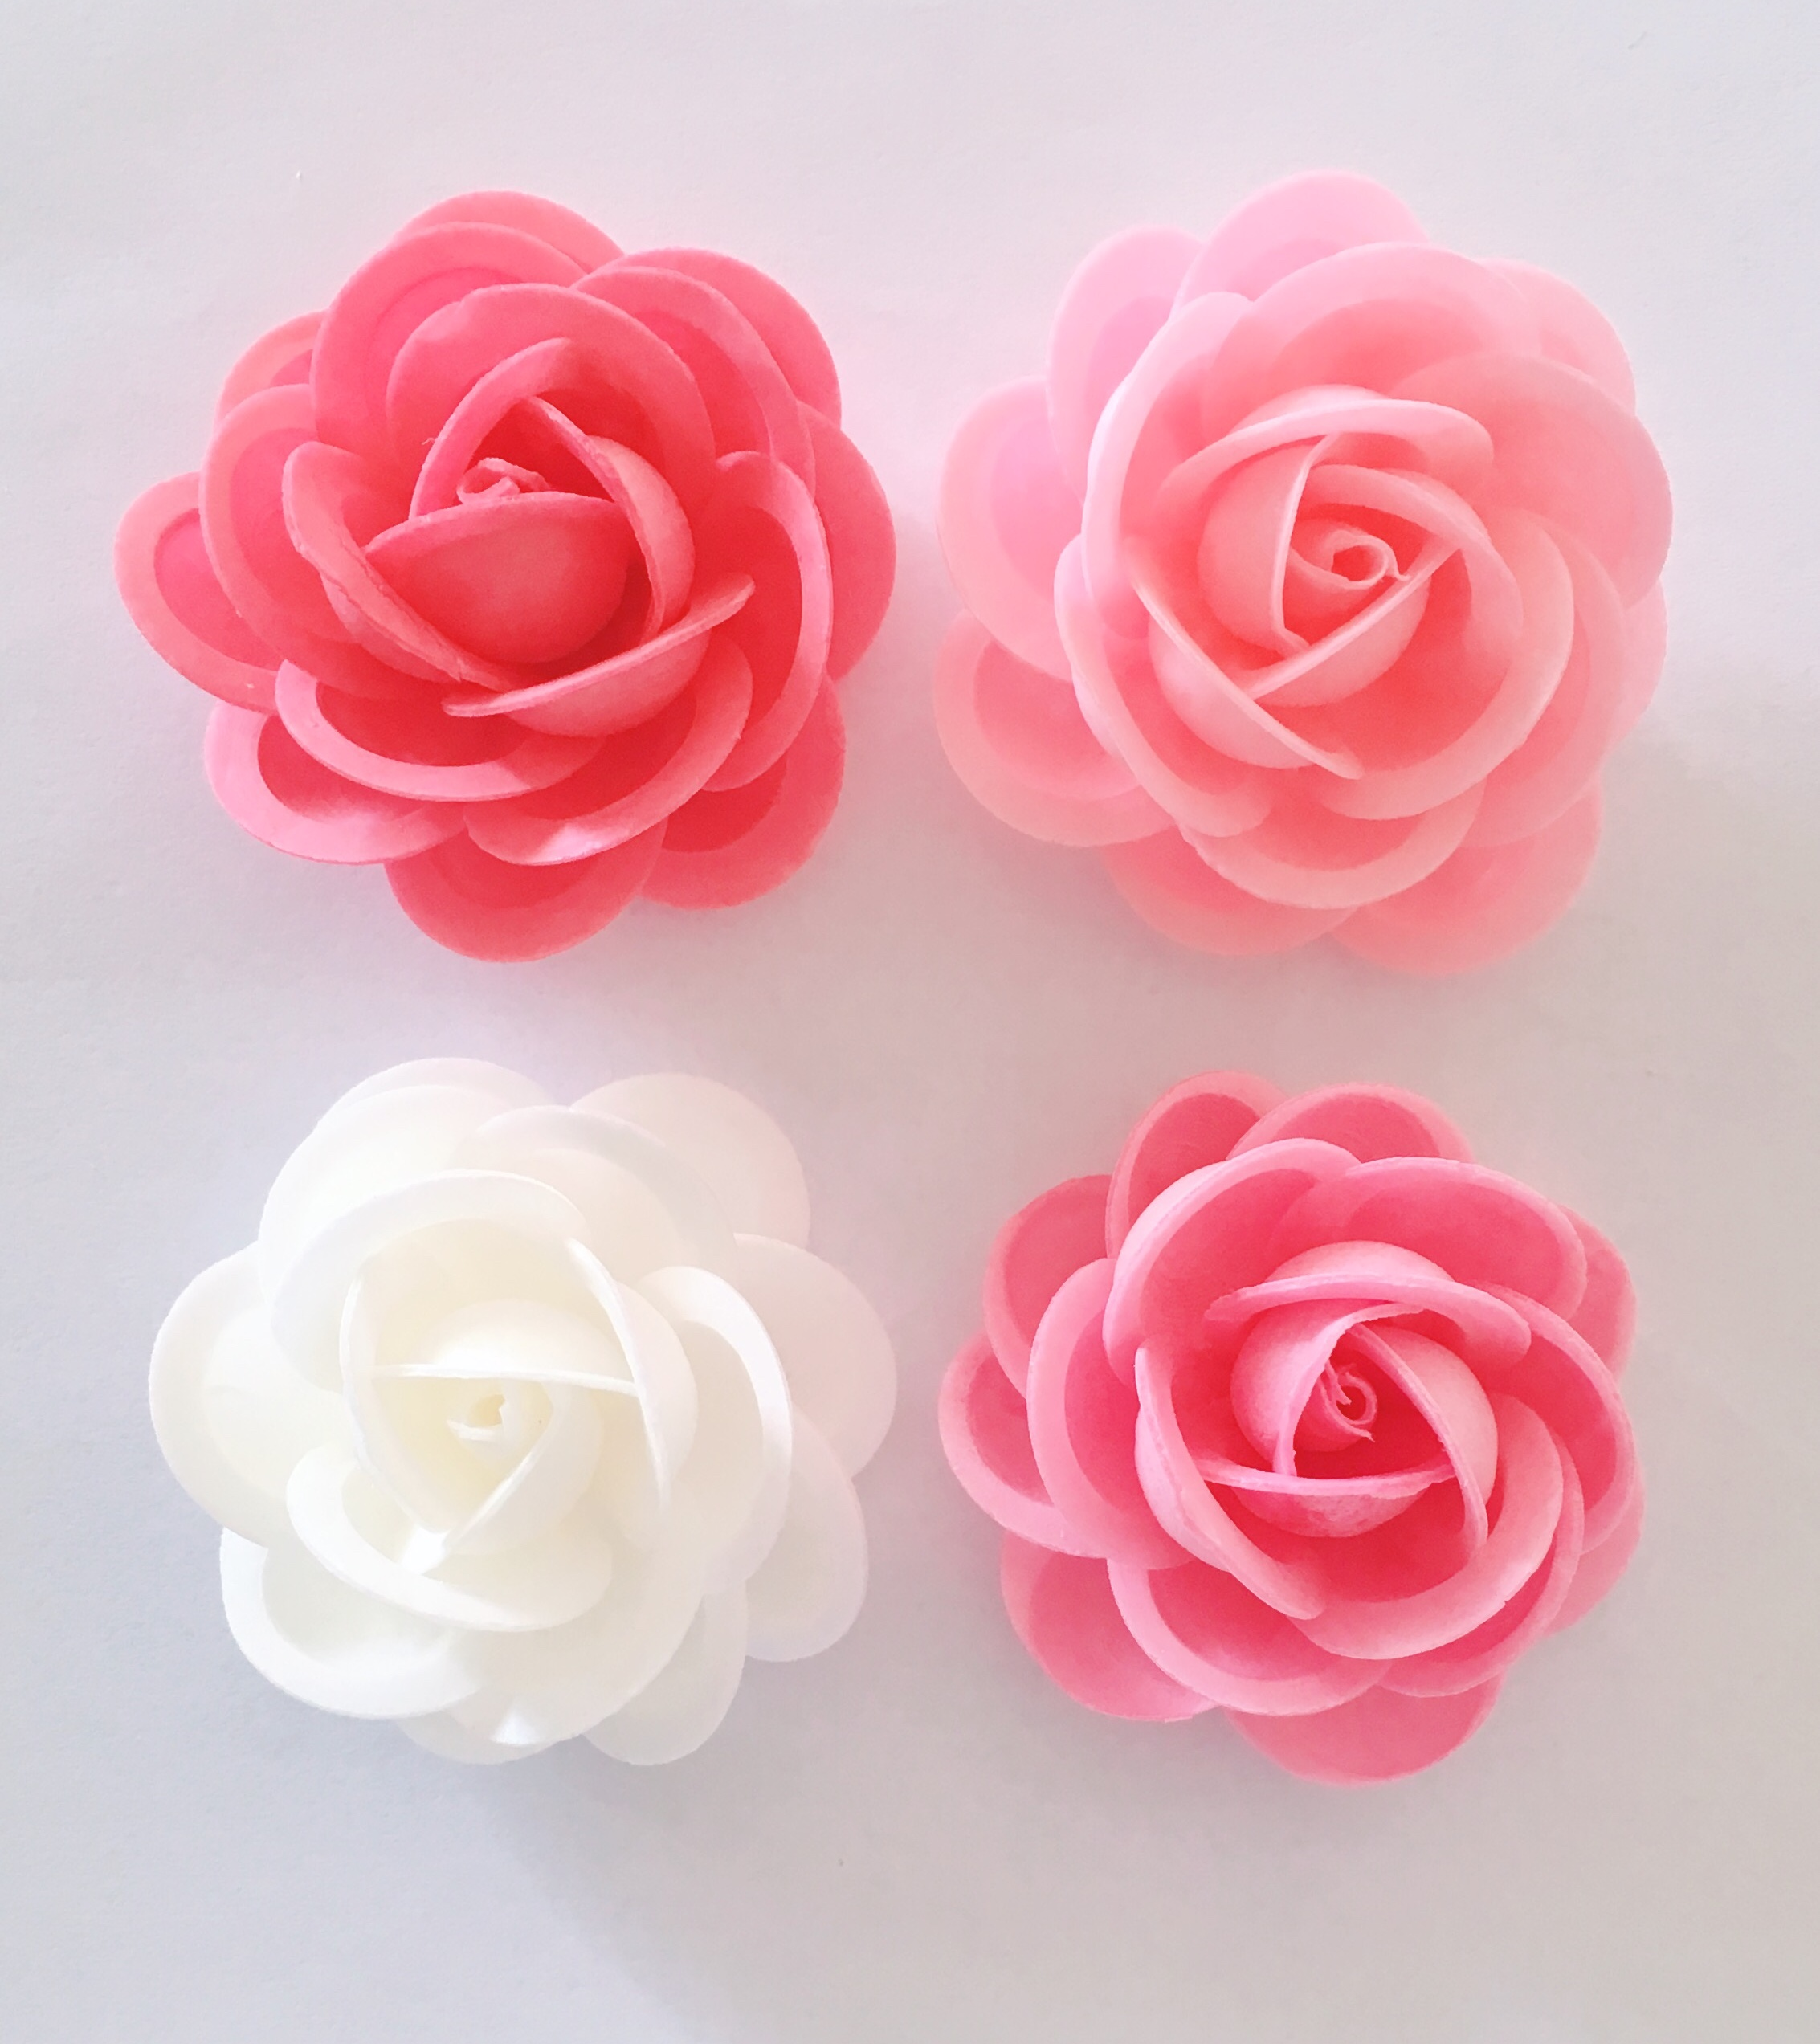 Wafer Paper A4 Wafer Flowers Sugar Flowers